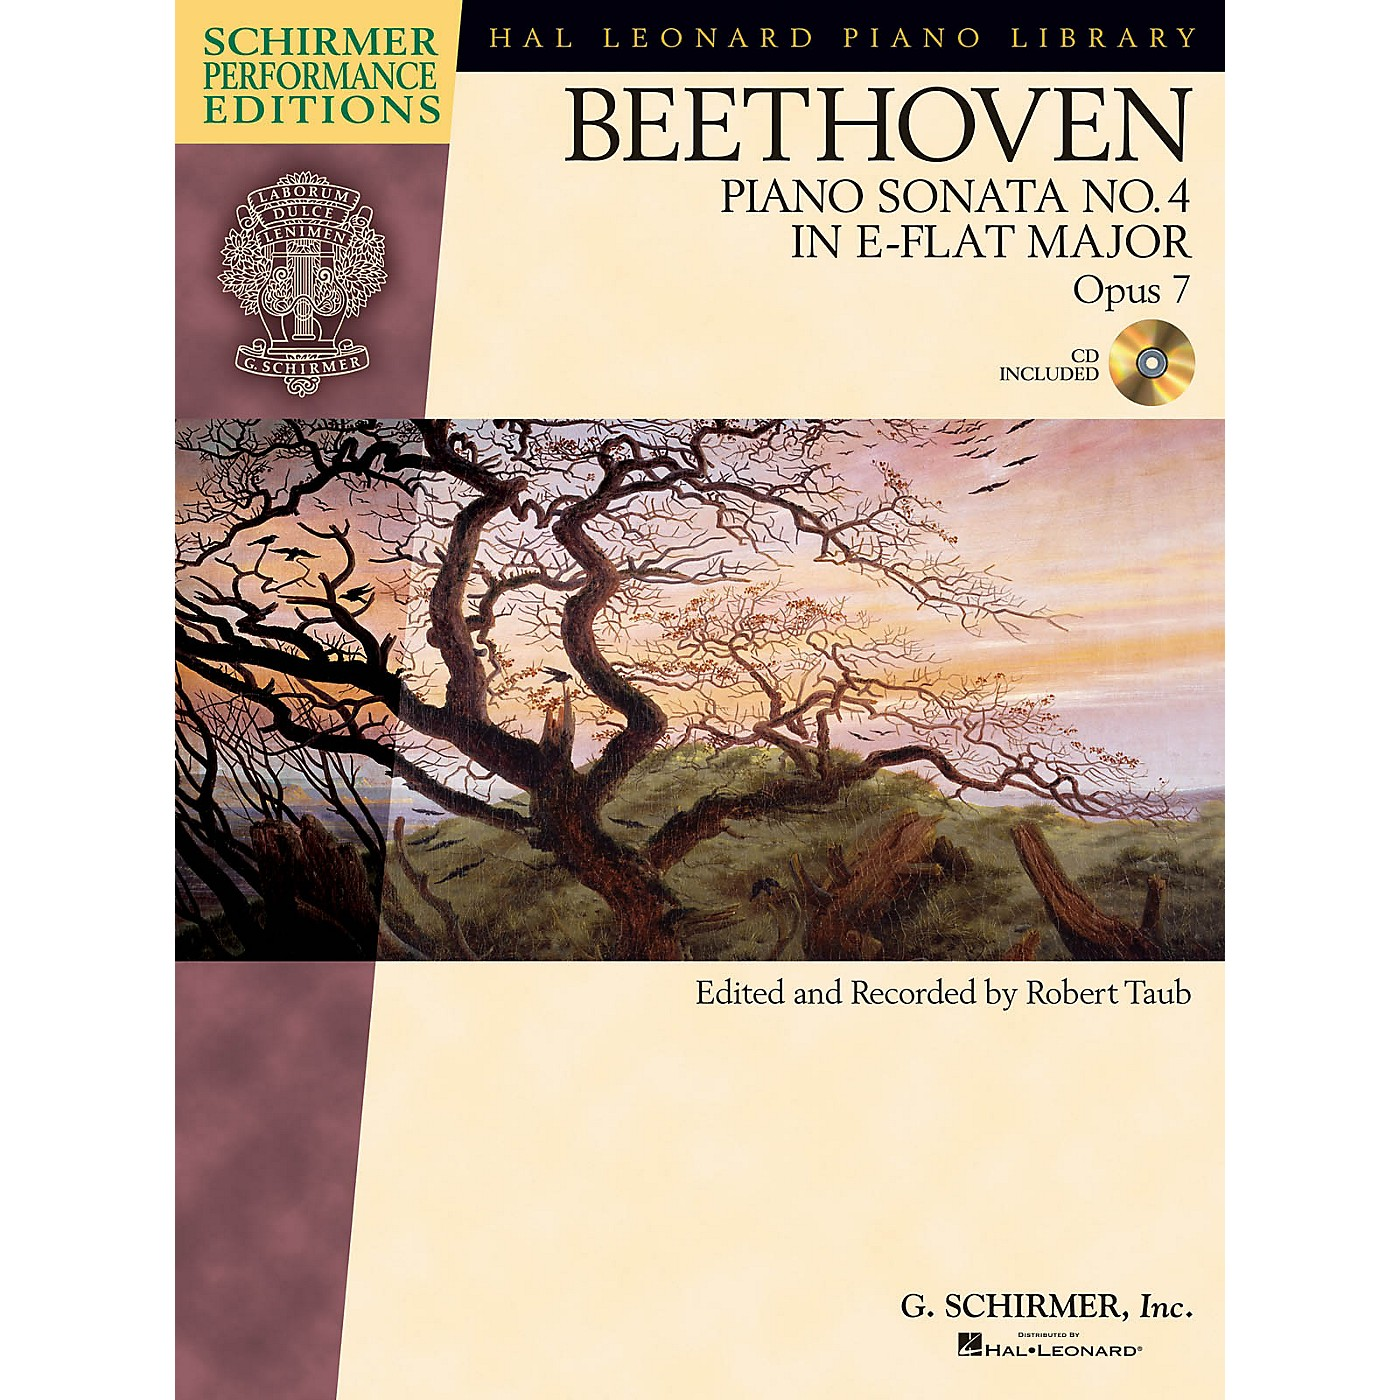 G. Schirmer Beethoven: Sonata No 4 in E-flat Maj Op 7 Schirmer Performance Editions BK/CD by Beethoven Edited by Taub thumbnail